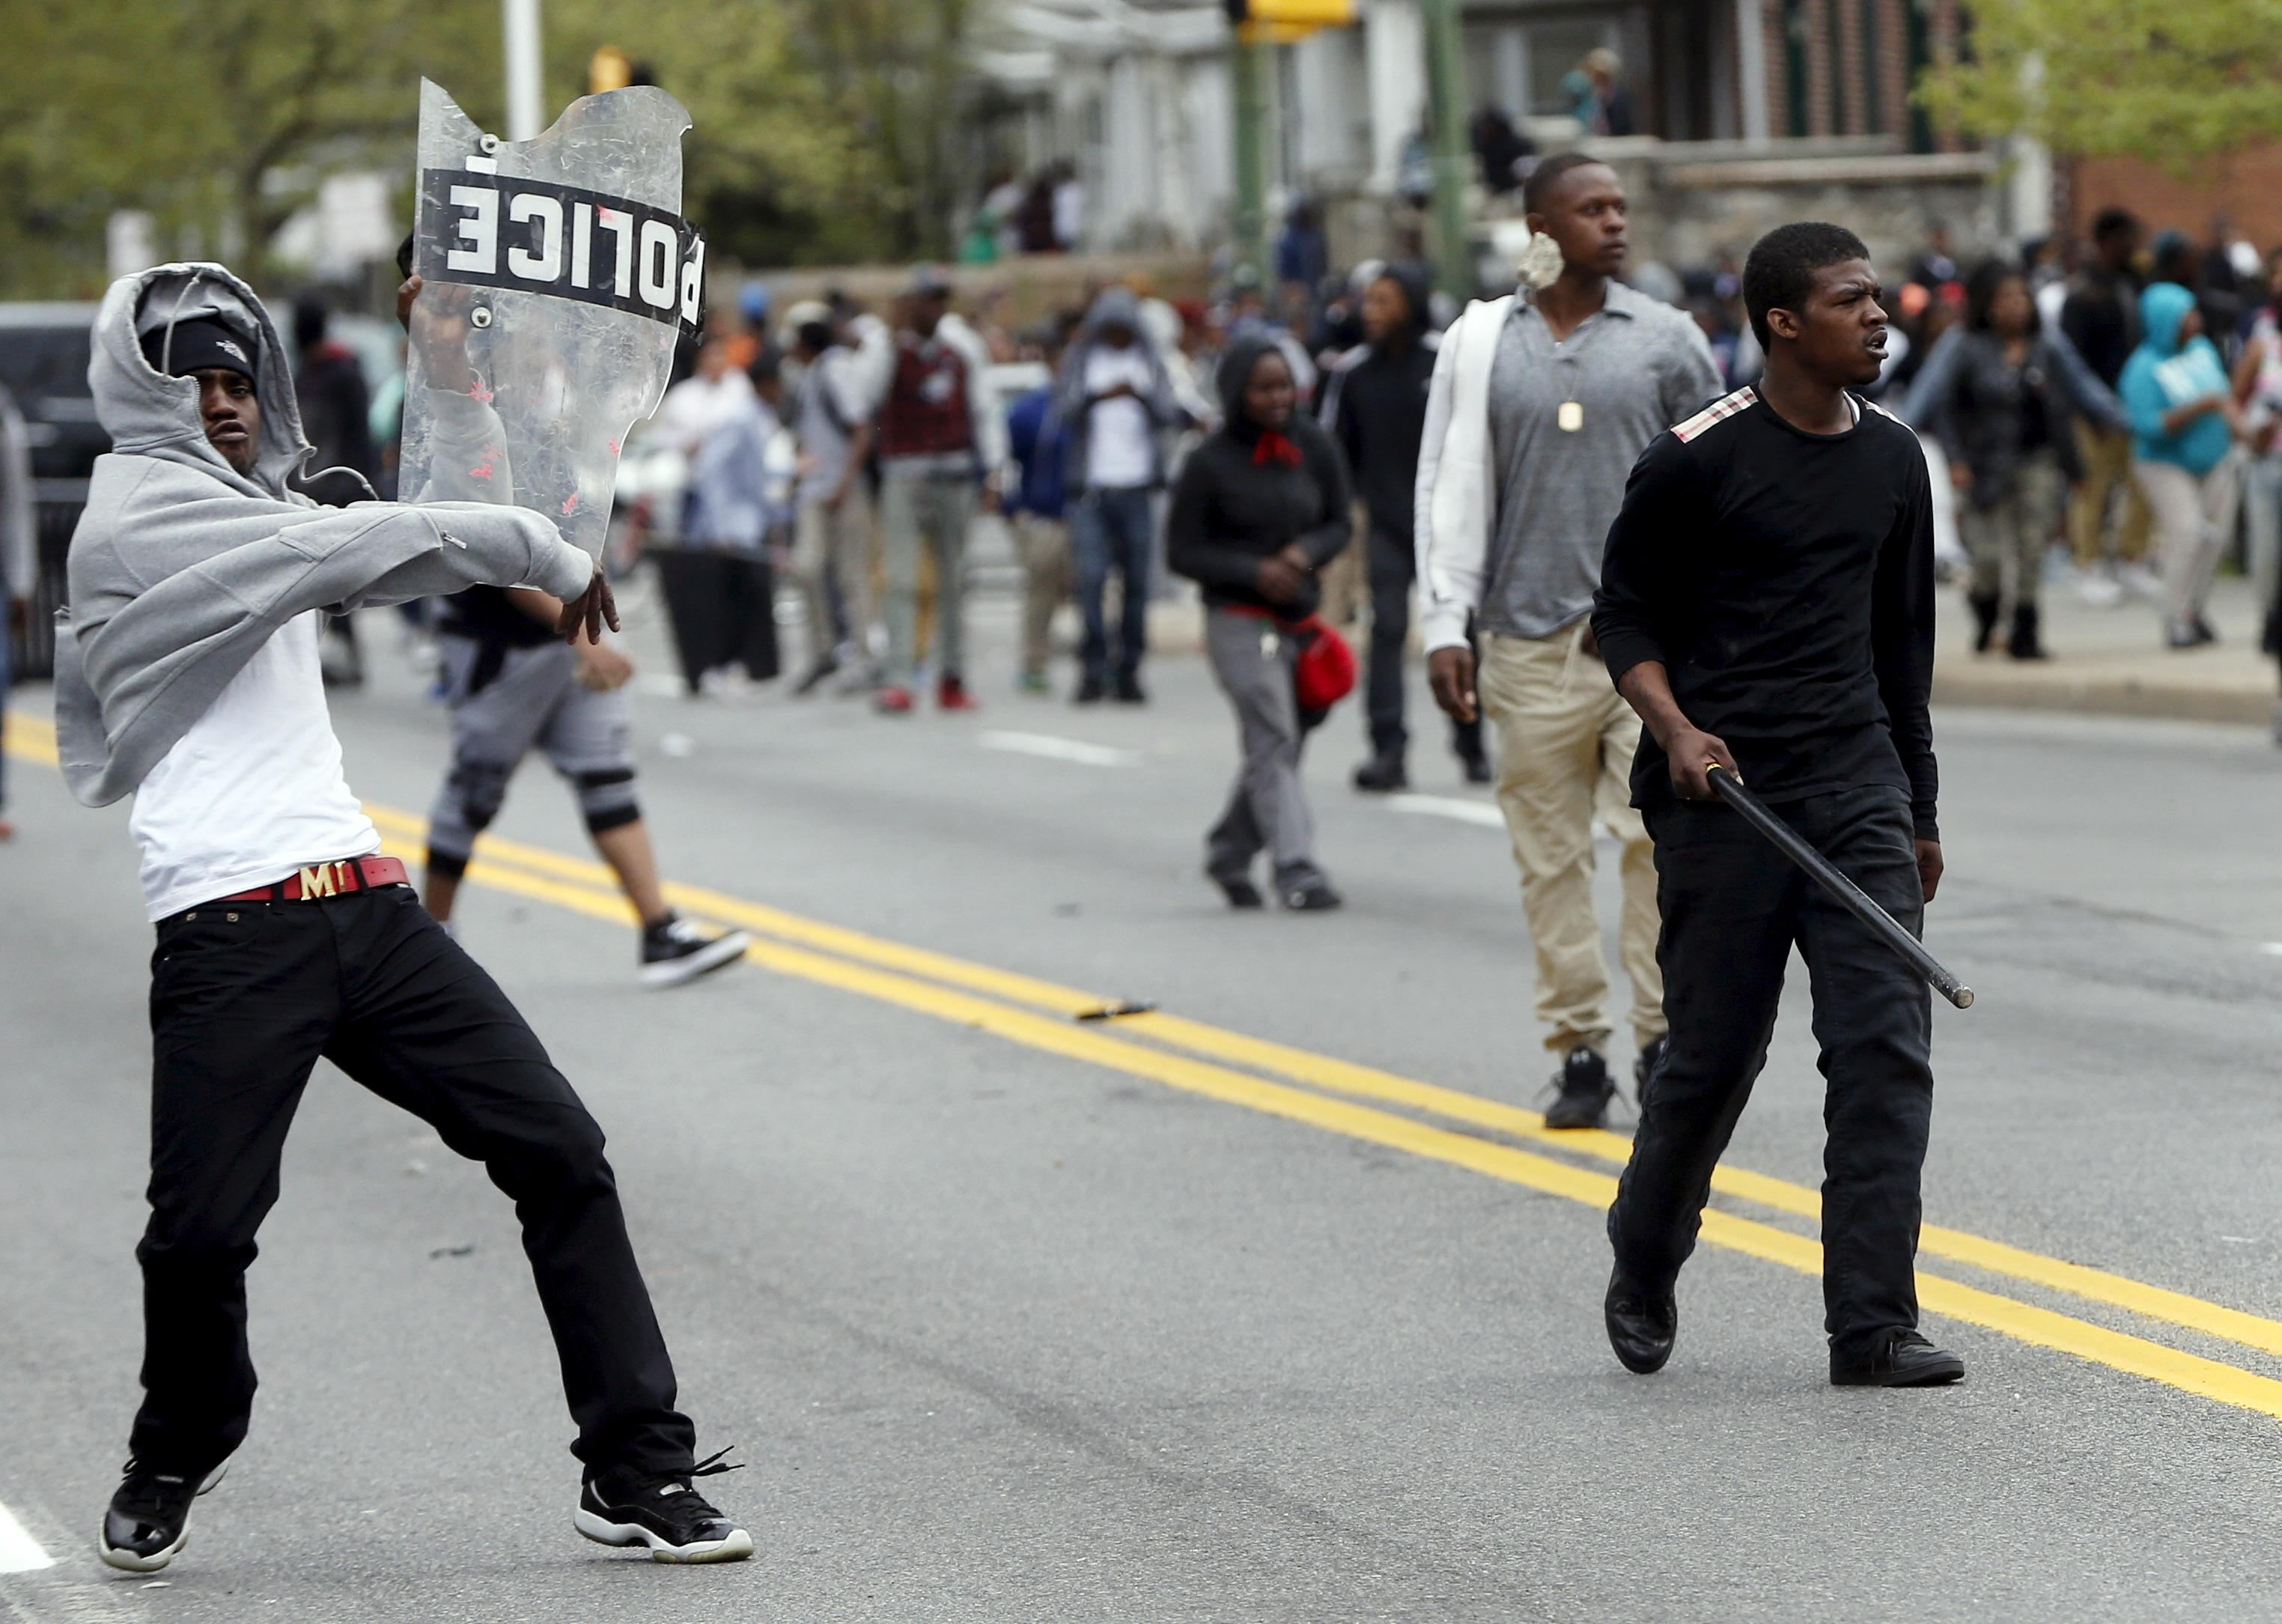 Baltimore is descending into chaos as protesters and cops clash